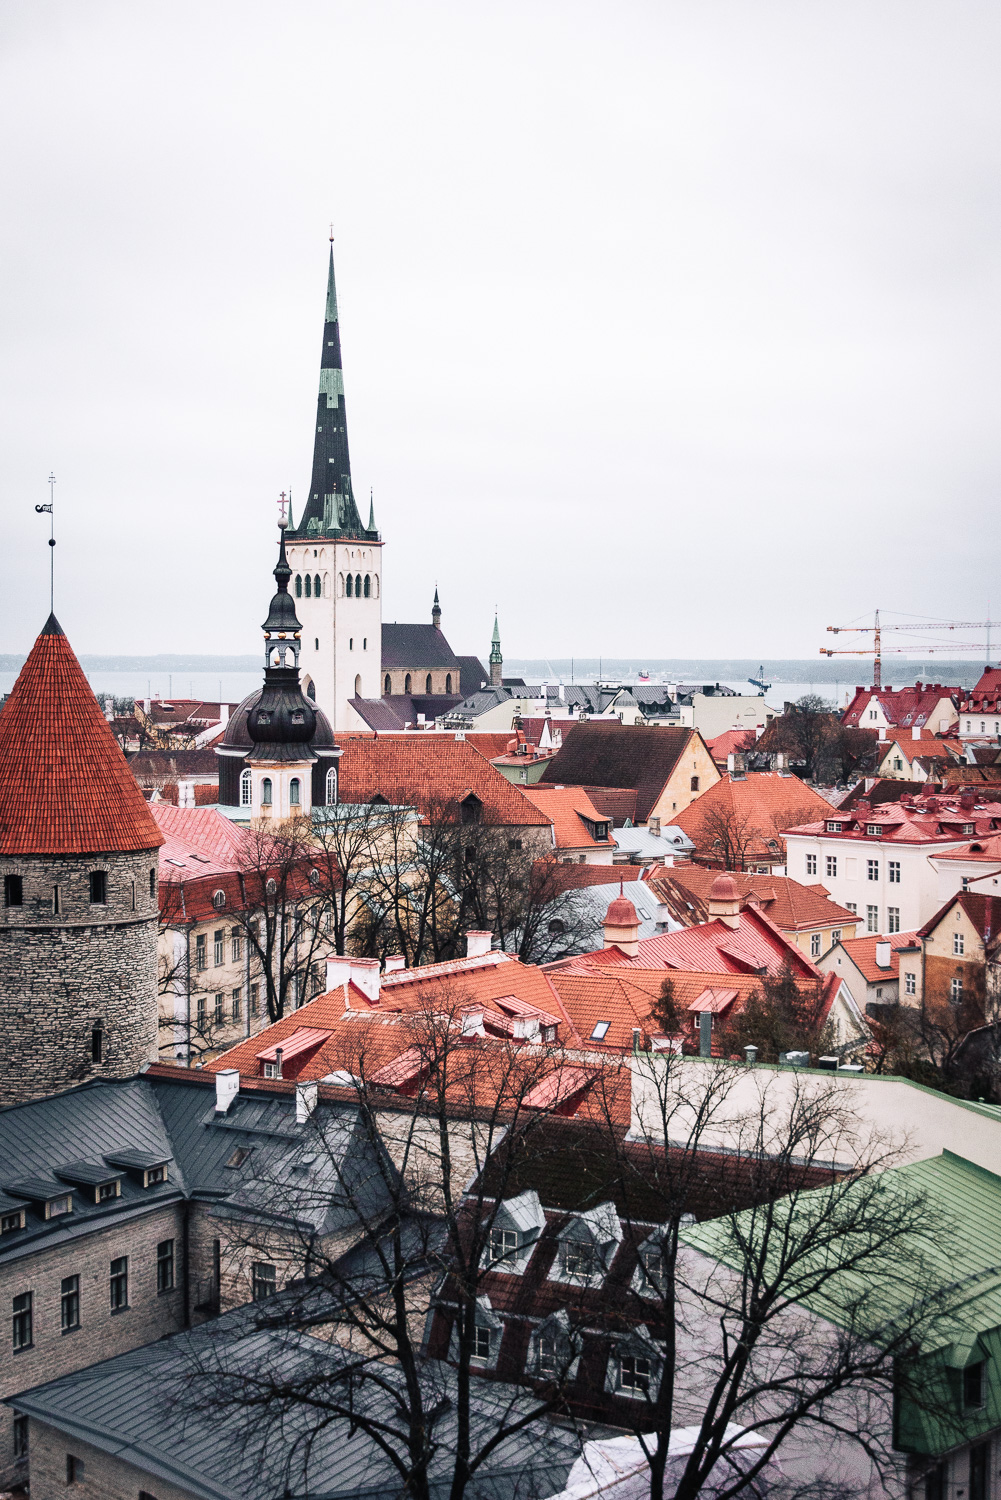 A view of Tallinn's Old Town from Patkuli viewing platform | A day trip to Tallinn from Helsinki